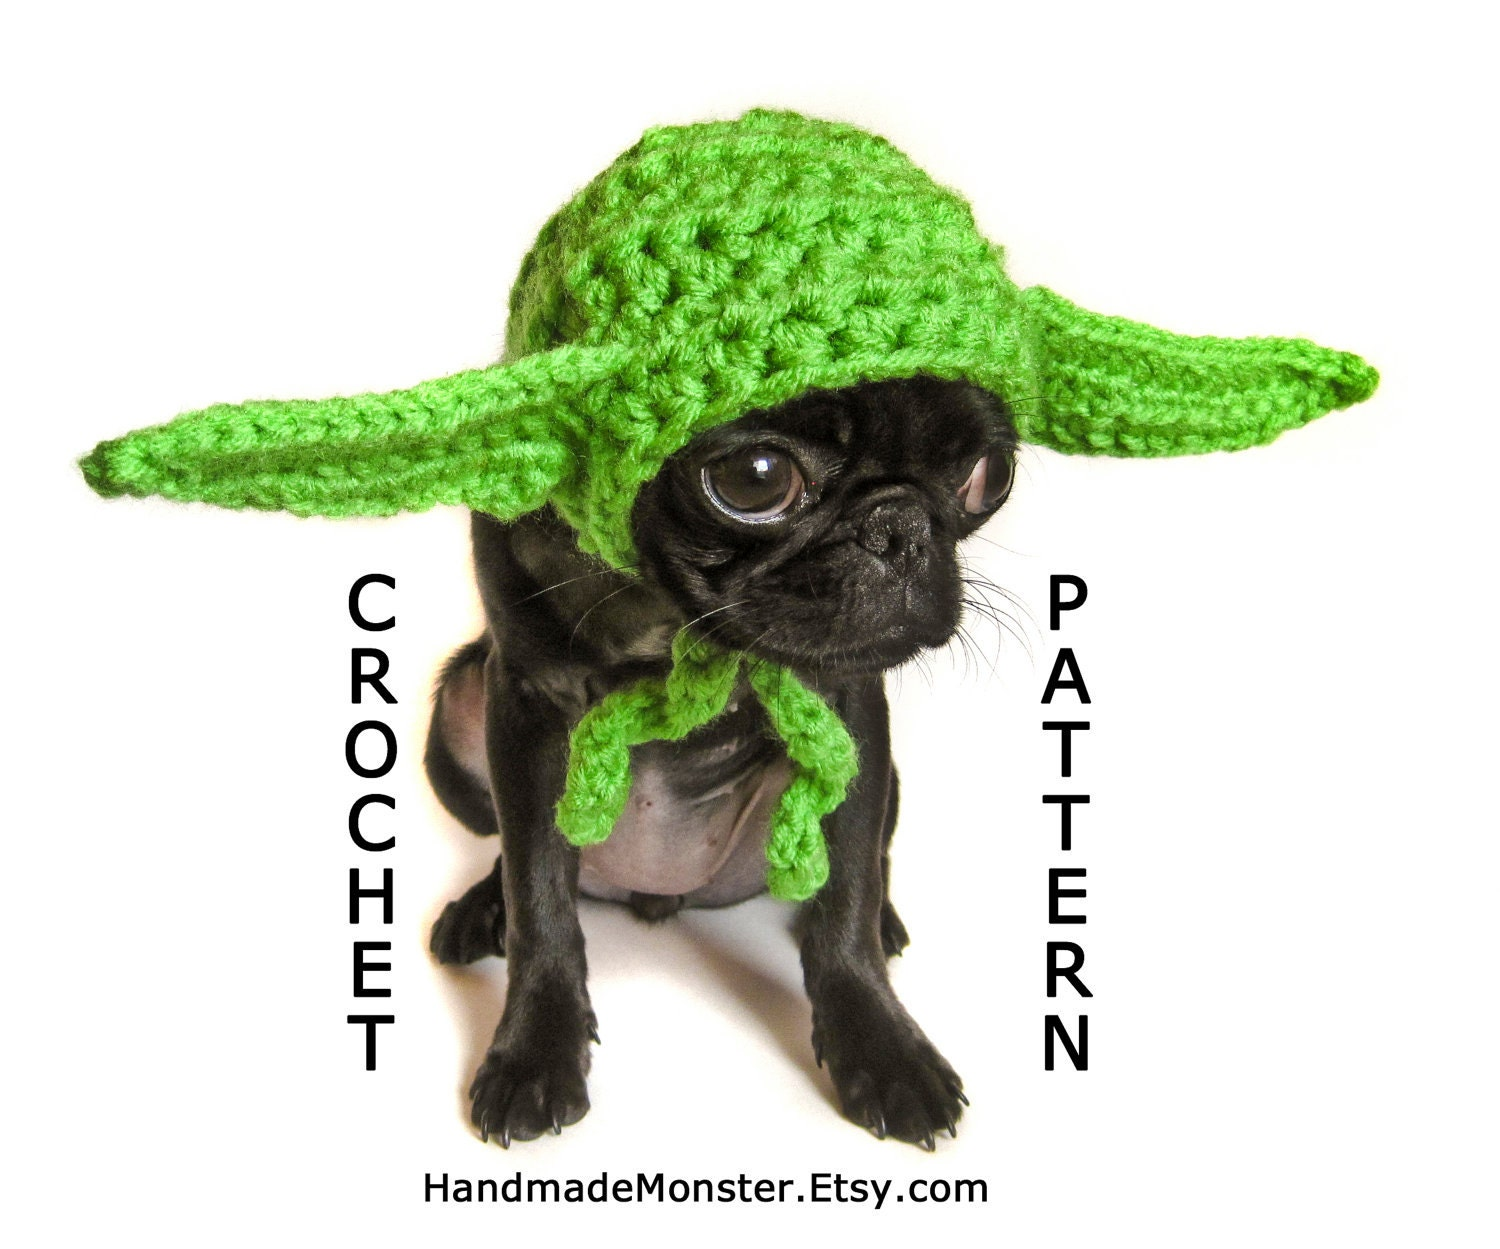 Crochet Patterns Pets : CROCHET DOG HAT pattern yoda star wars inspired by HandmadeMonster